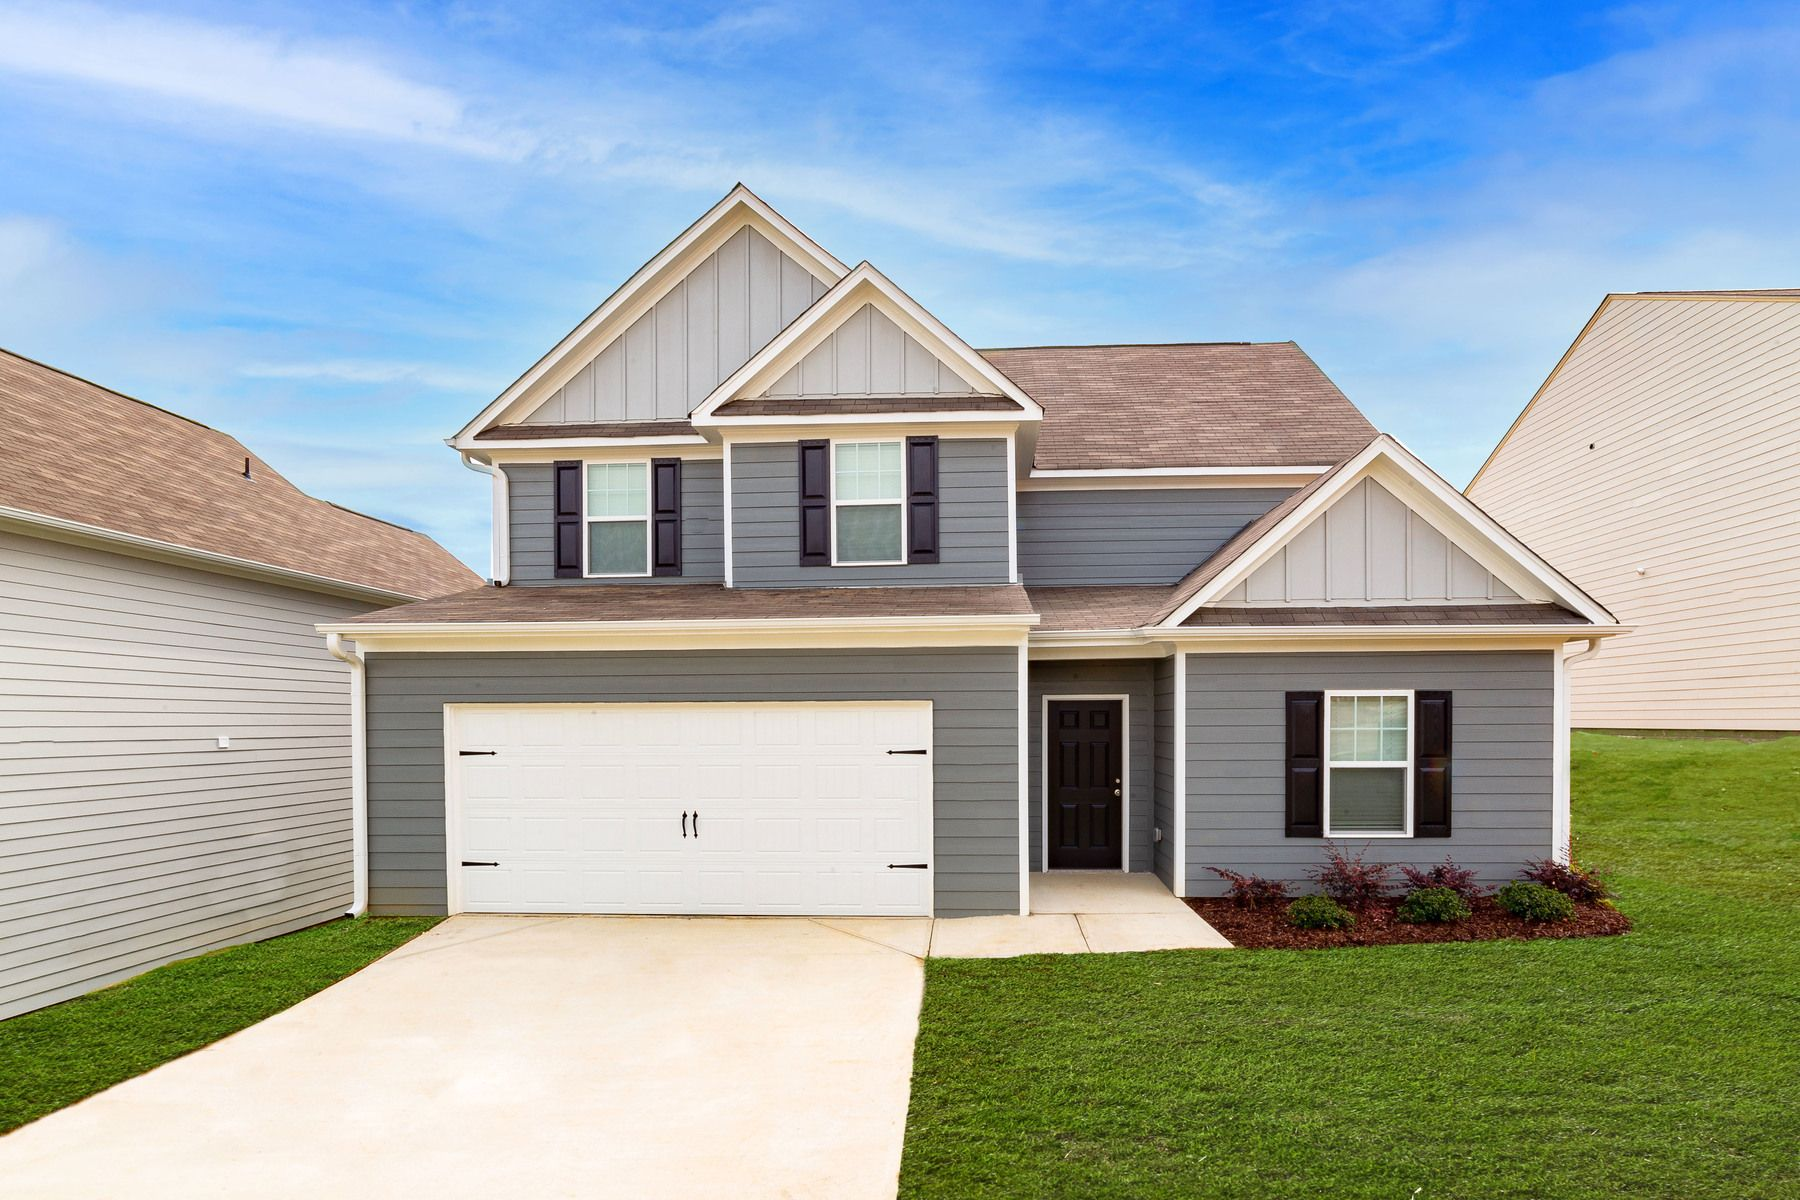 The Hartwell at Twelve Oaks:Spacious new home with incredible curb appeal